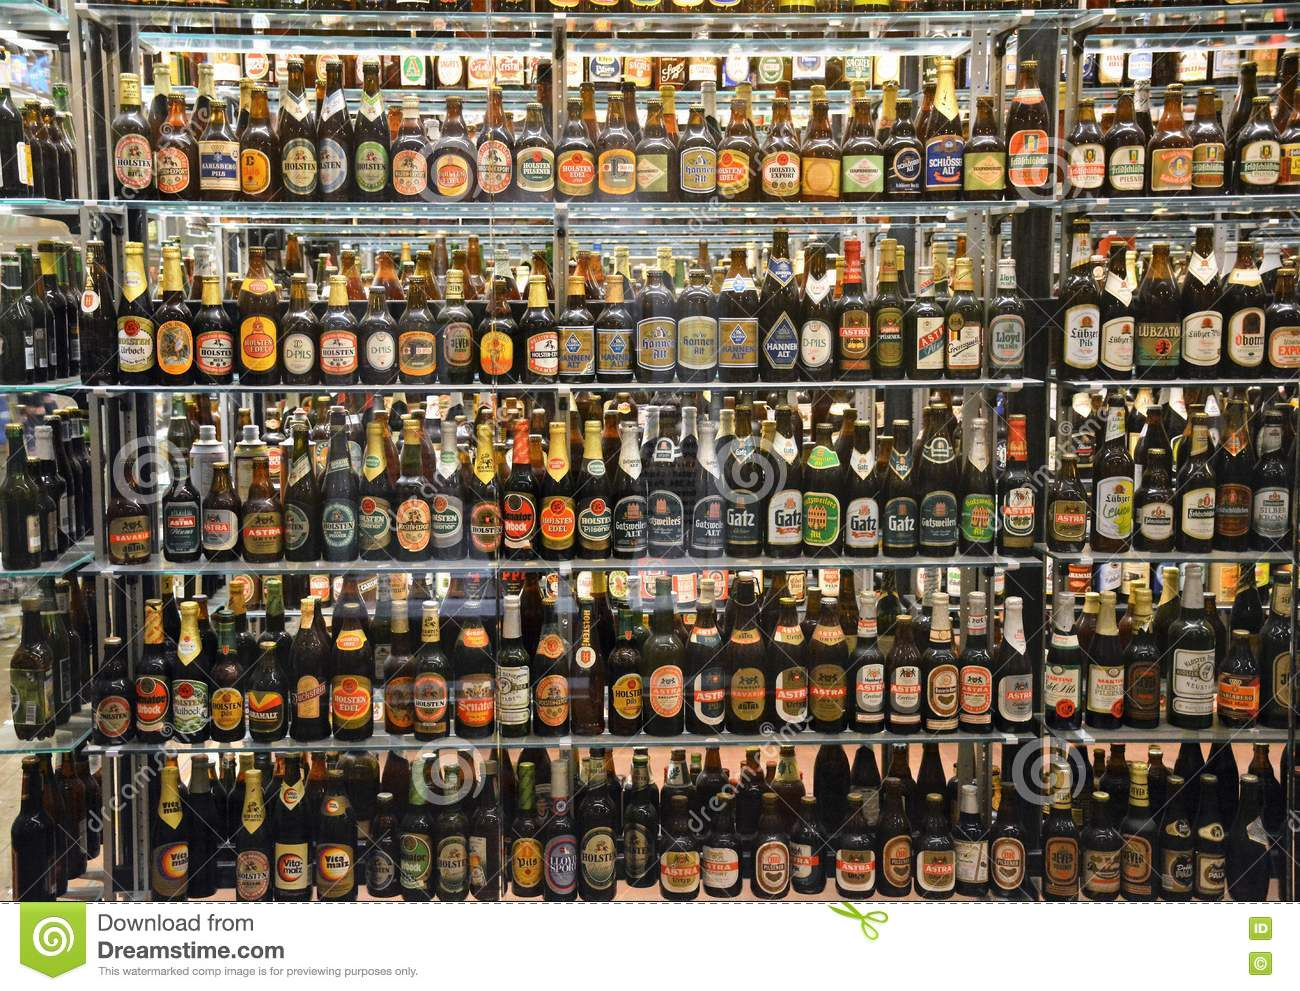 the massive bottle collection at the carlsberg brewery in copenhagen